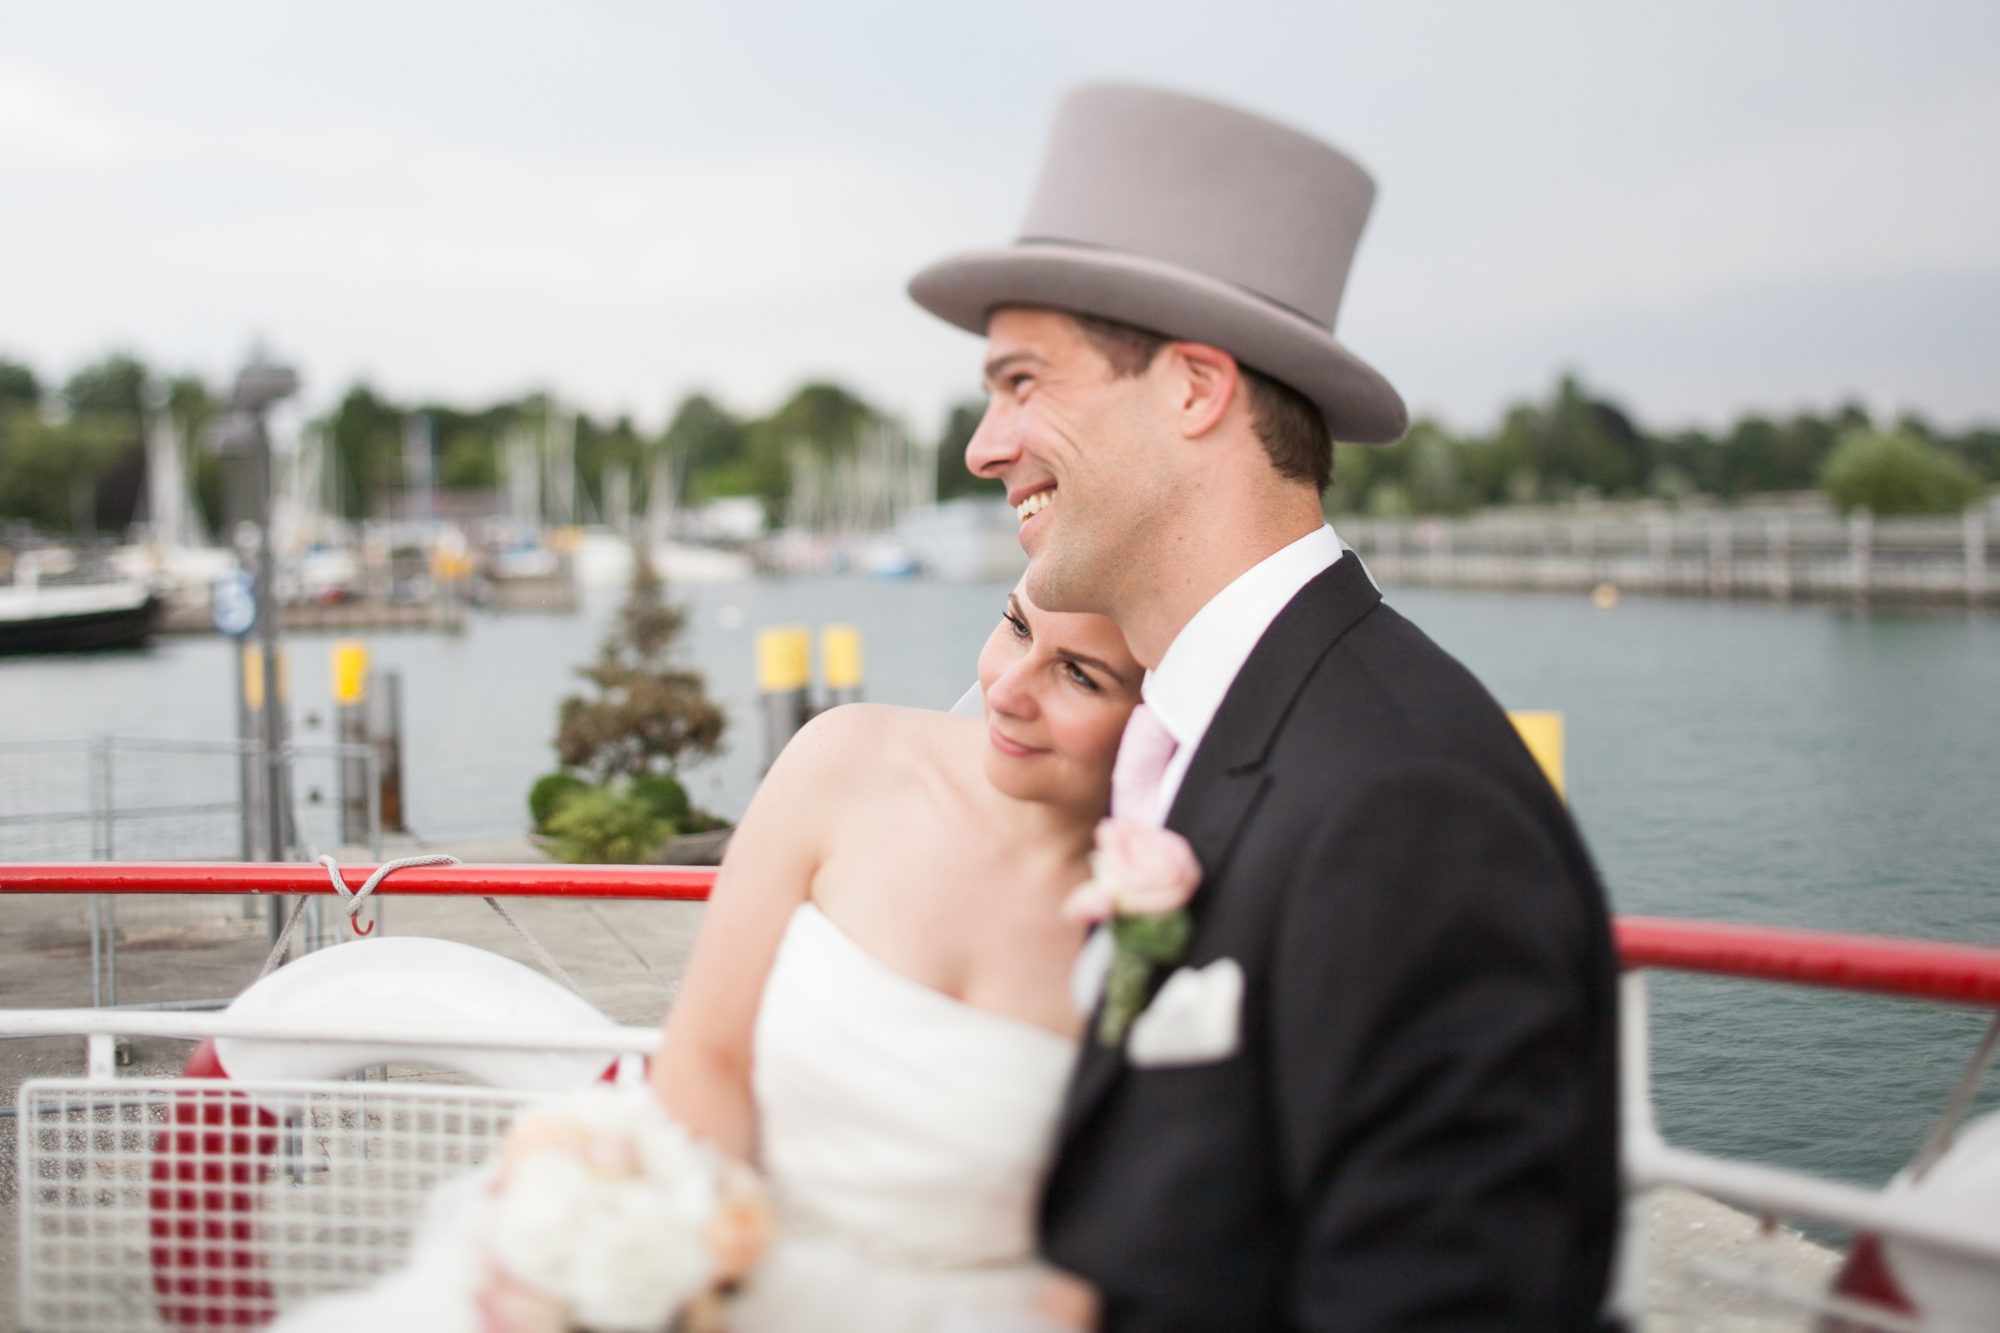 Fotograf Konstanz - Hochzeit Raphaela Phillip 065 - Wedding Story from Raphaela and Phillip at Lake of Constance  - 127 -